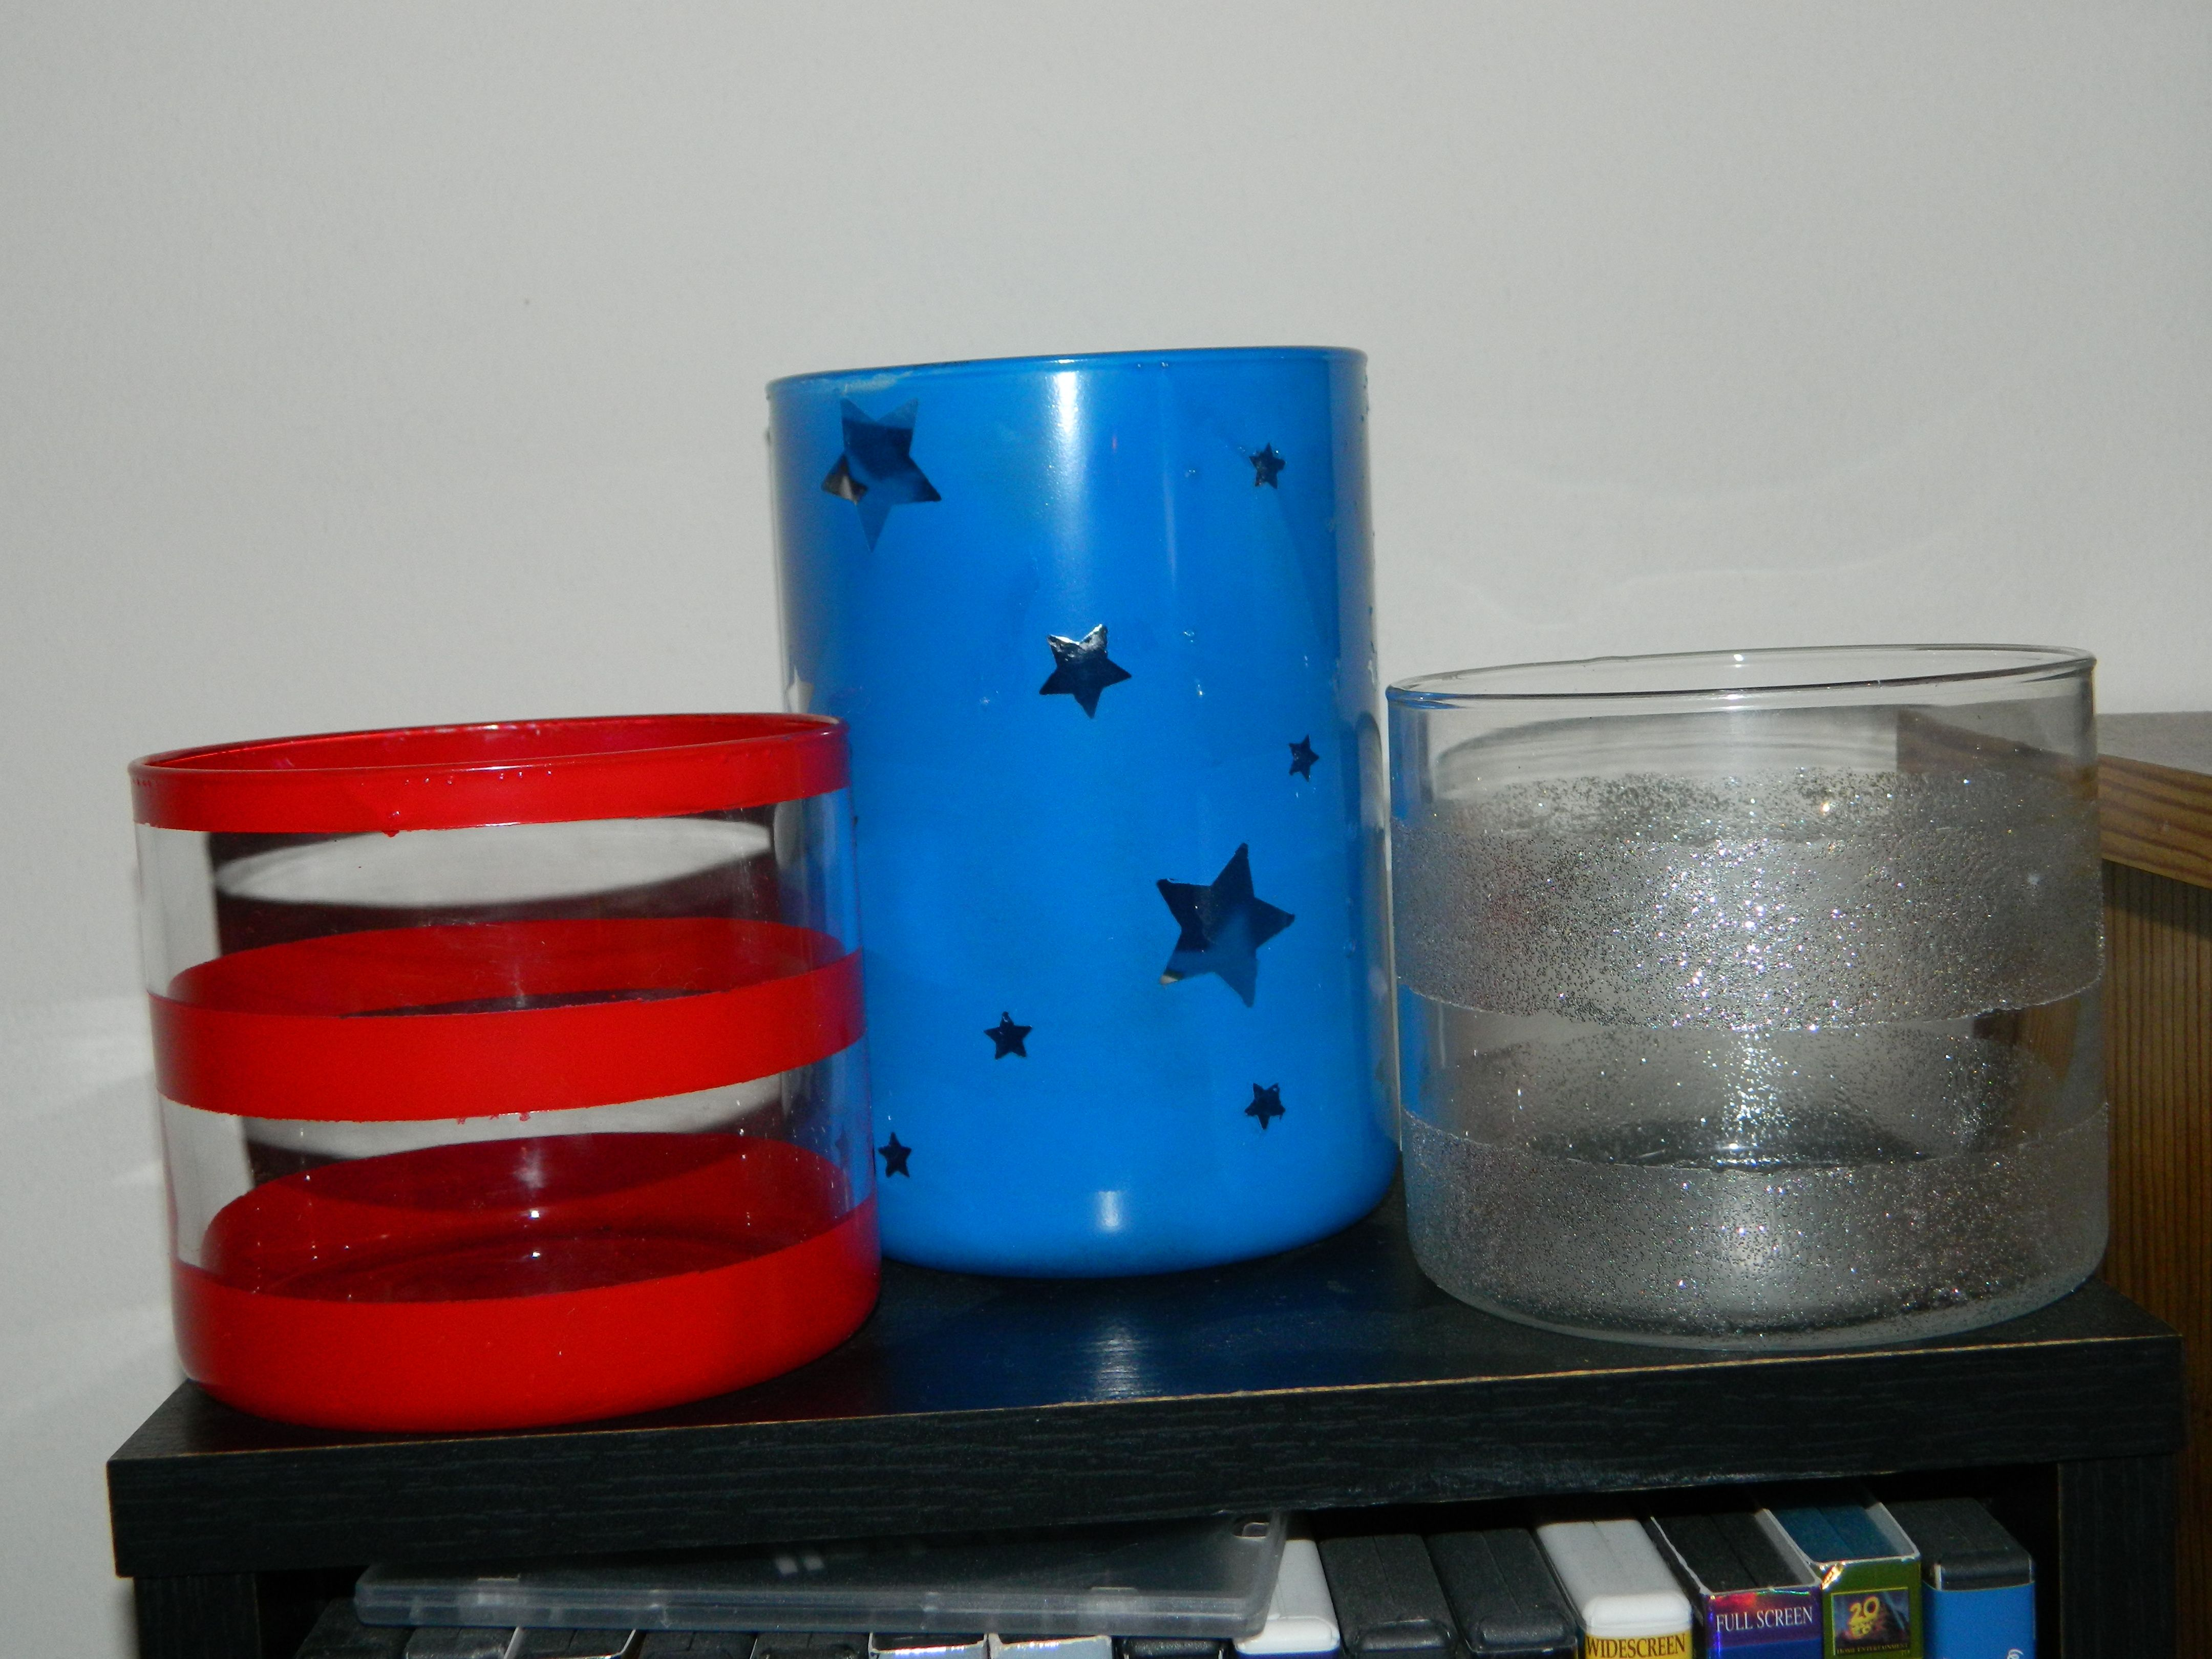 Old Candle Holders Painted With Spray Paint Red Painter S Tape Blue Star Stickers Silver Modge Podge Mixed With Old Candles Star Stickers Painters Tape